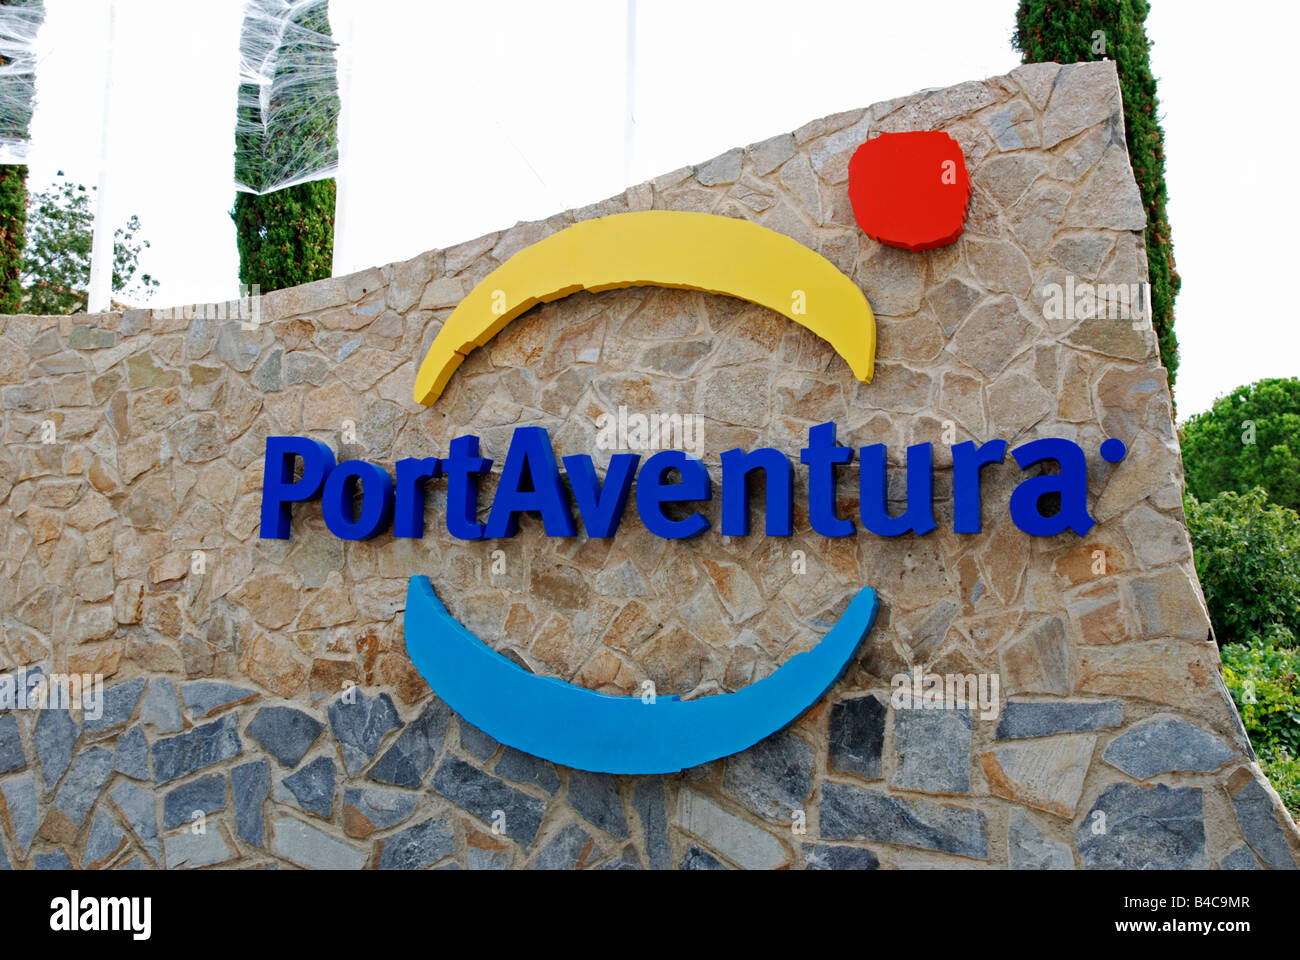 sign outside the entrance to portaventura theme park in